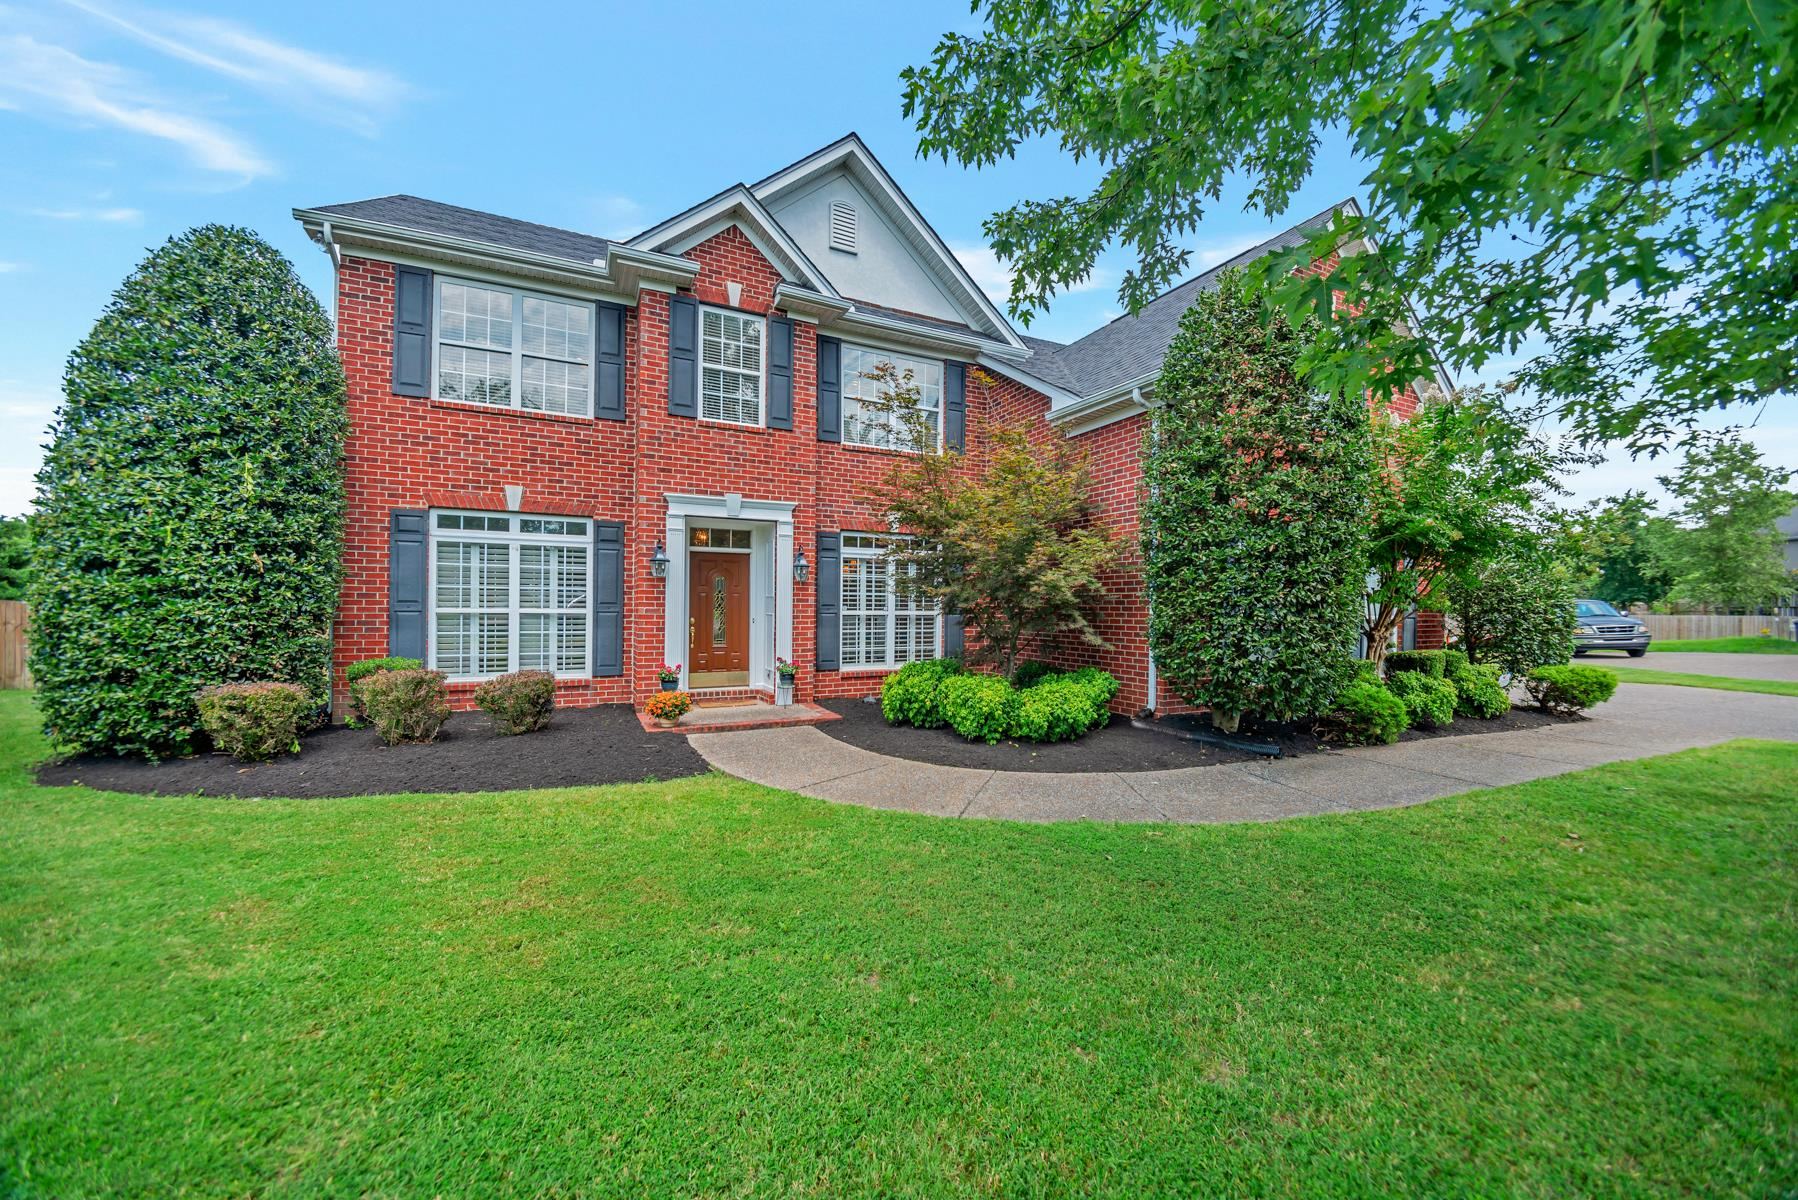 1333 Autumn Springs Ln, Old Hickory, TN 37138 - Old Hickory, TN real estate listing